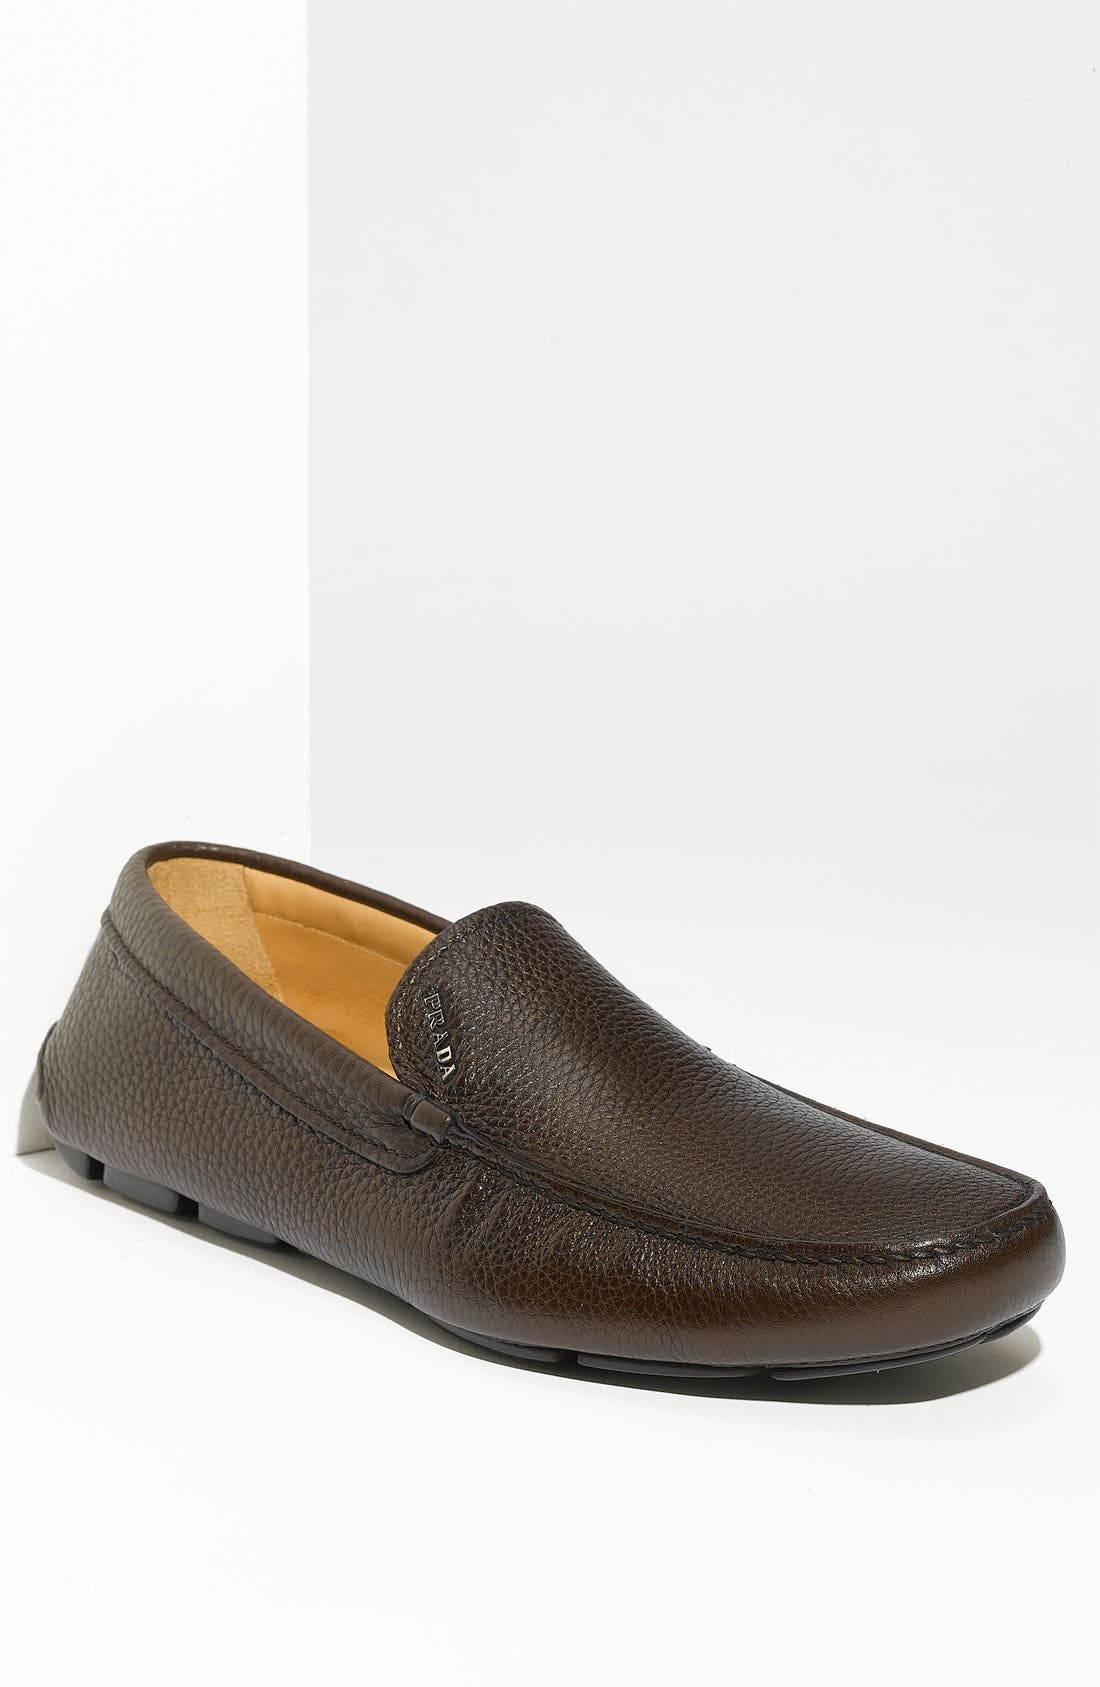 Main Image - Prada Pebbled Leather Driving Shoe (Men)